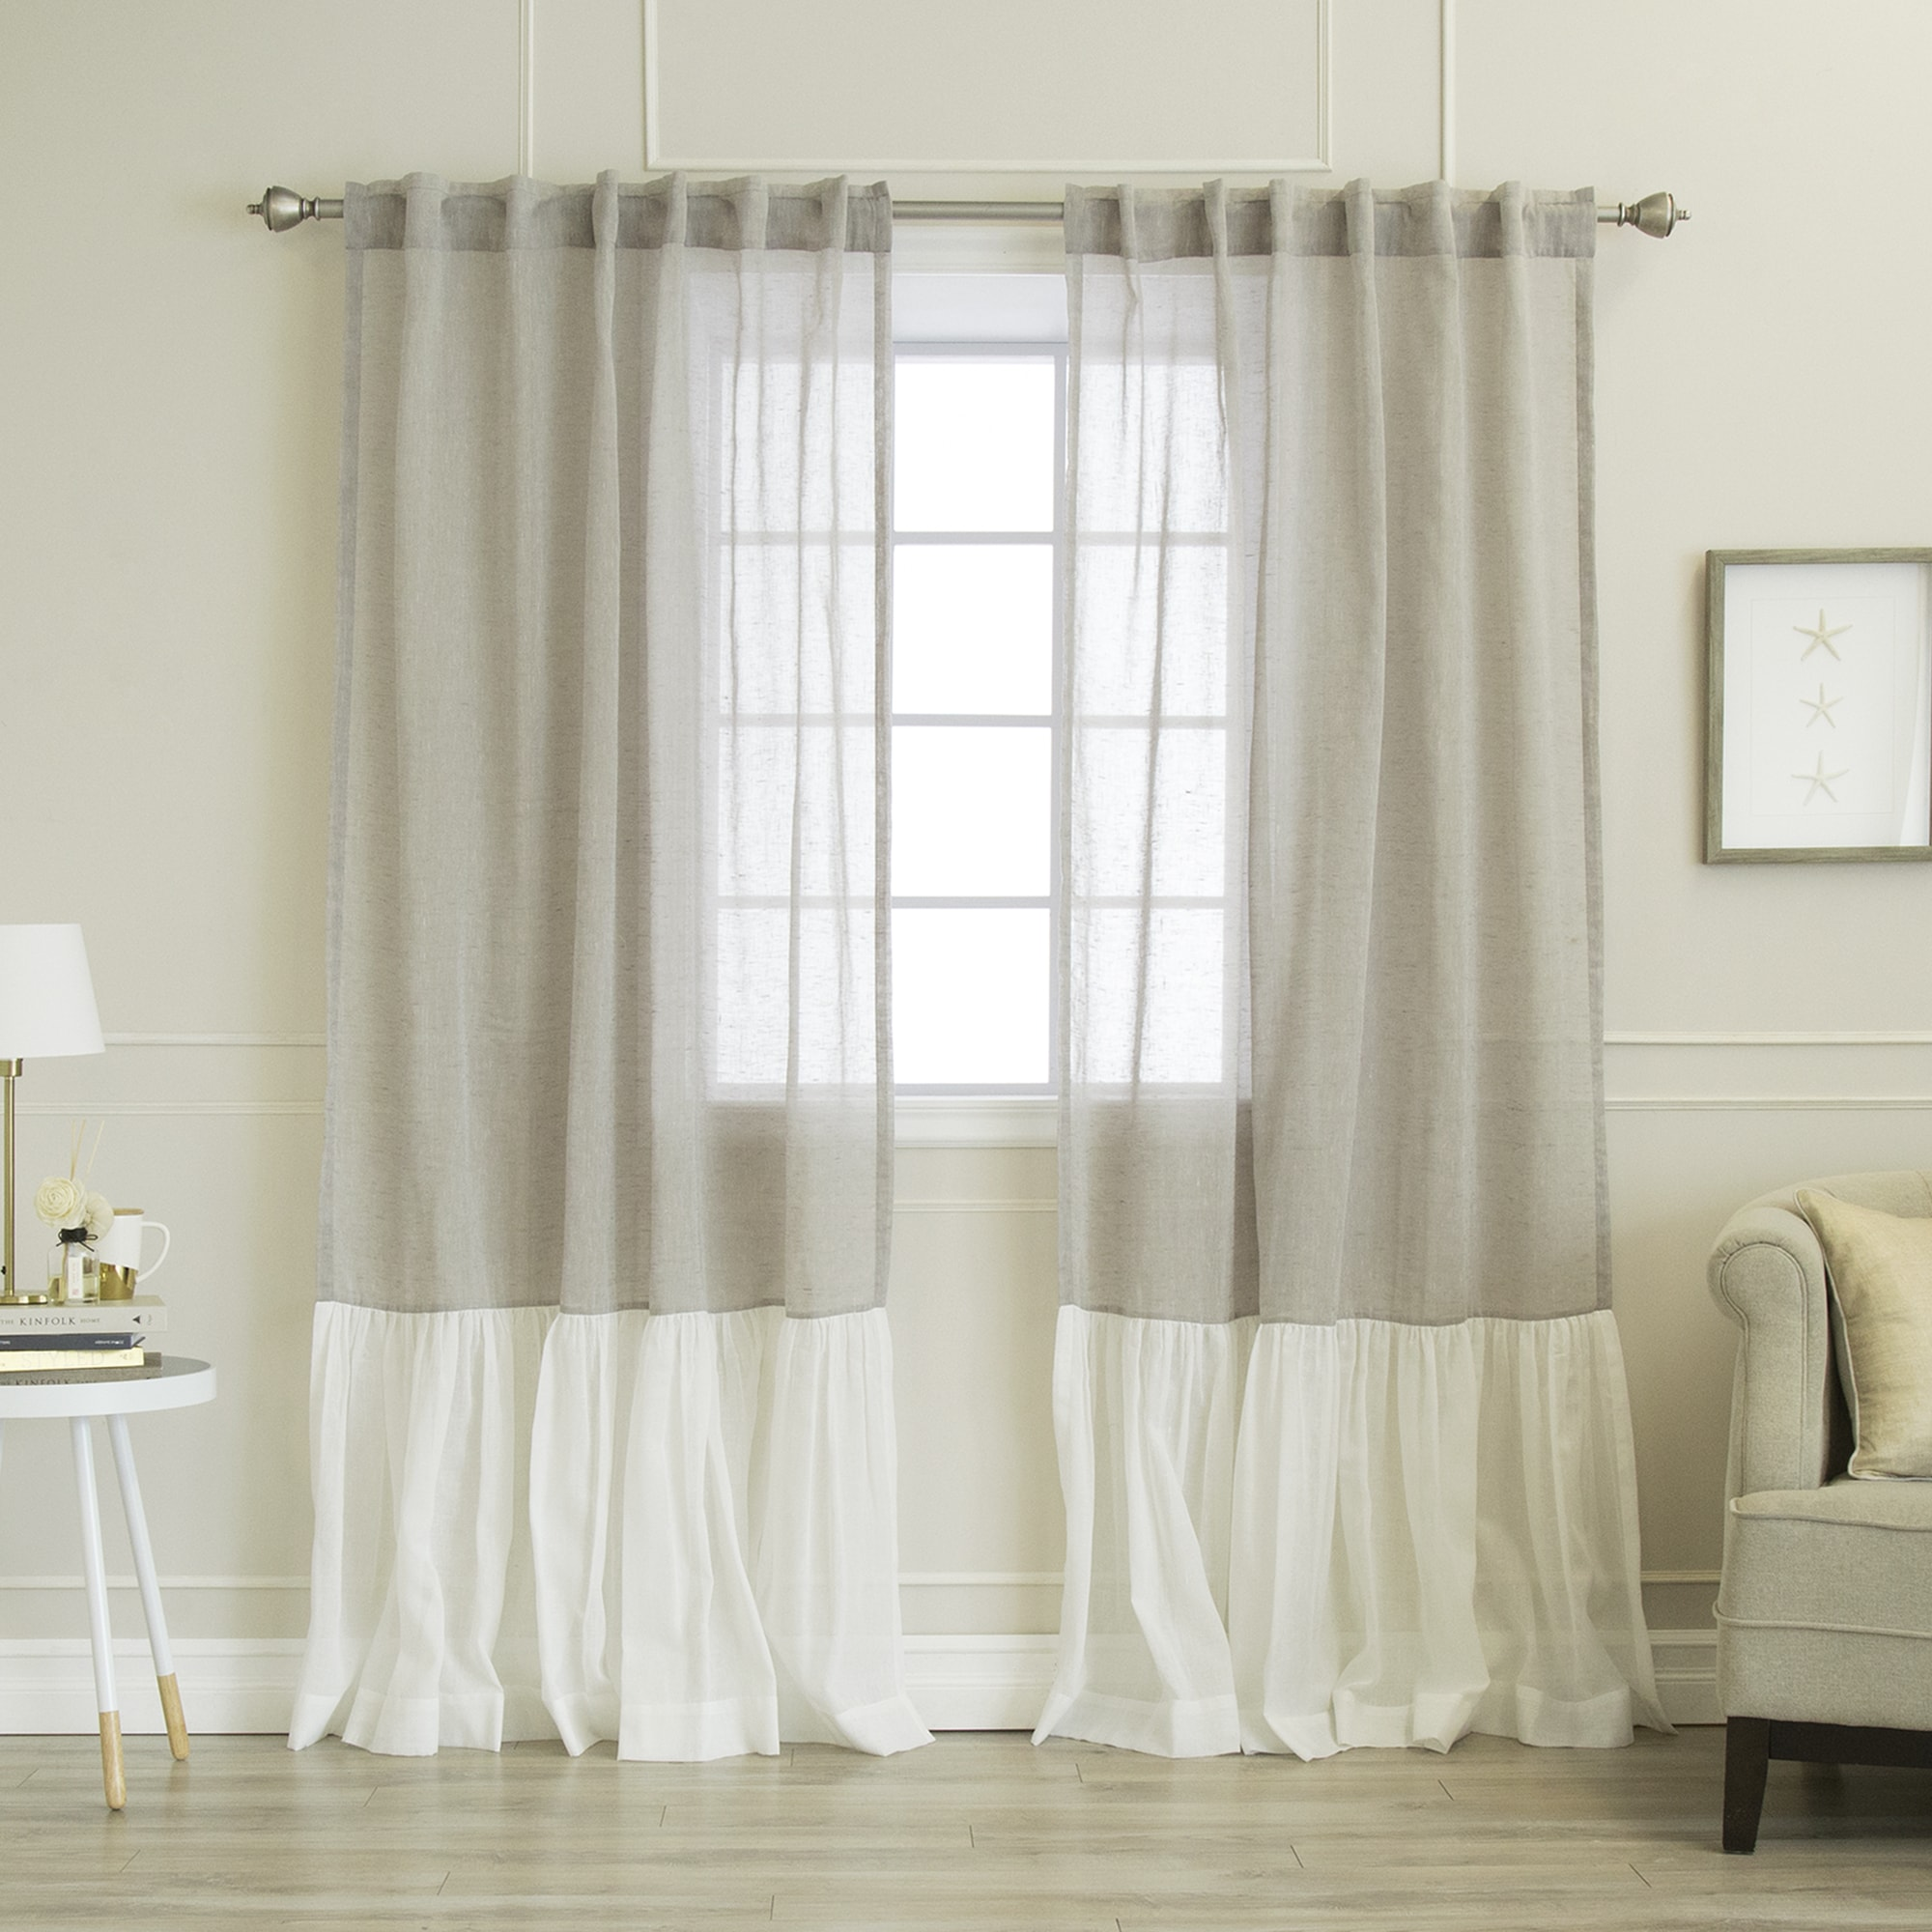 amazing shipping ruffled ruffle pict decor for and files panels window lush treatments nerina inspiration today white curtain pair popular overstock linen curtains panel